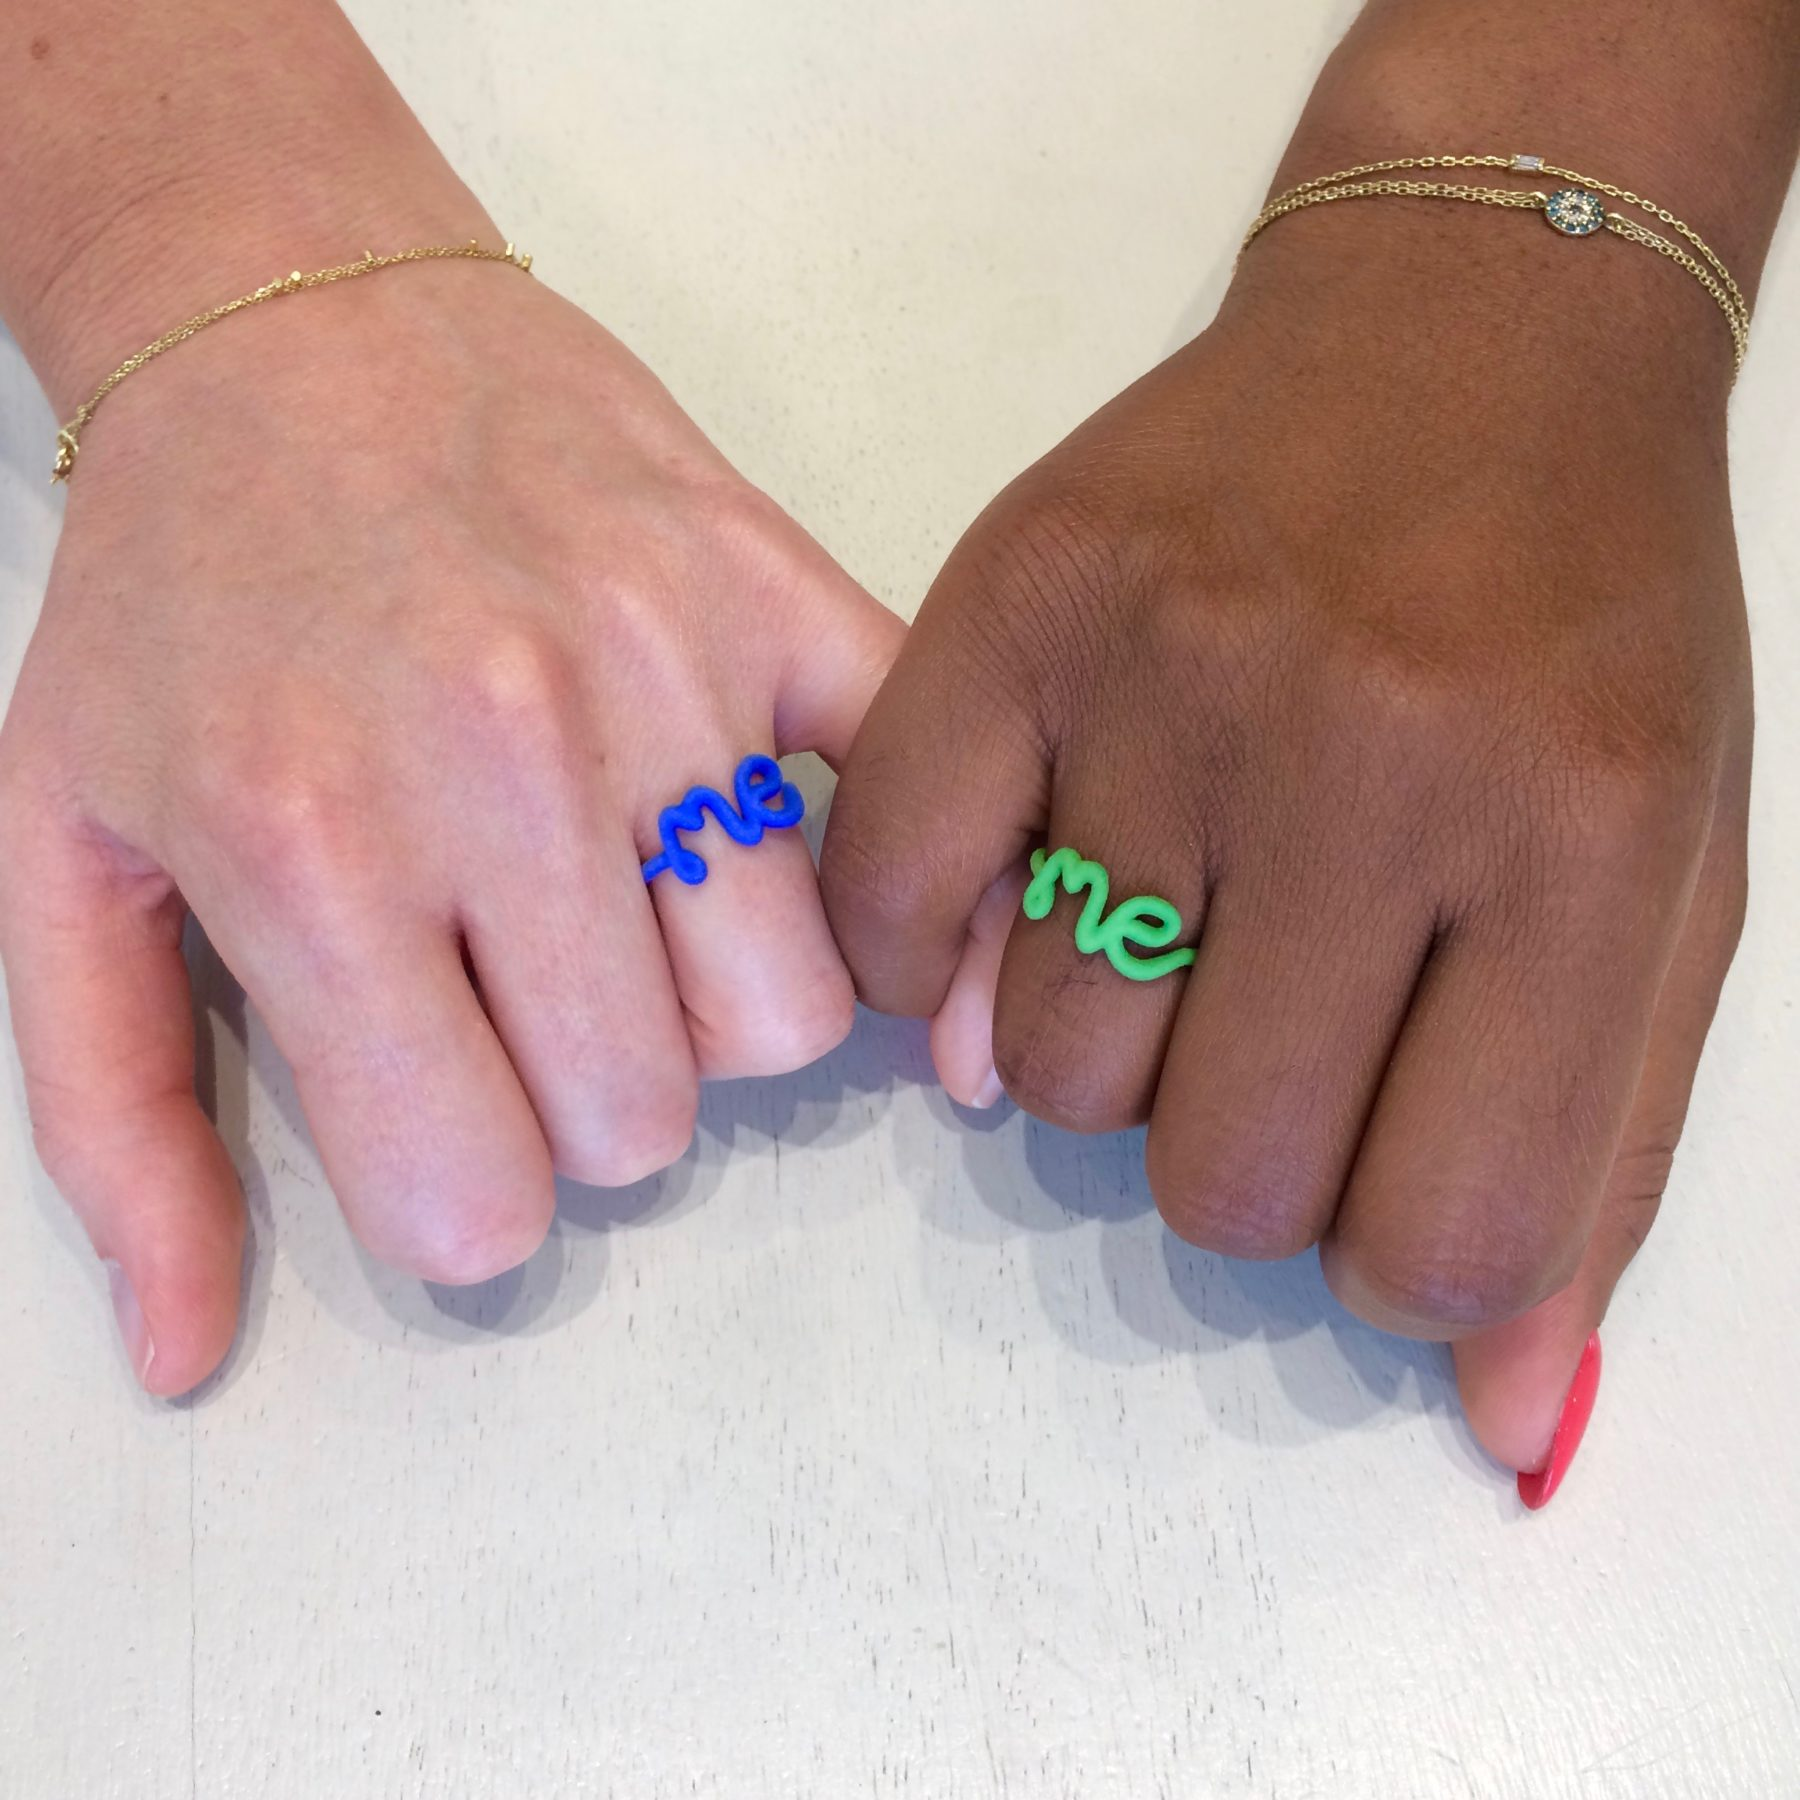 Me rings worn by friends holding hands